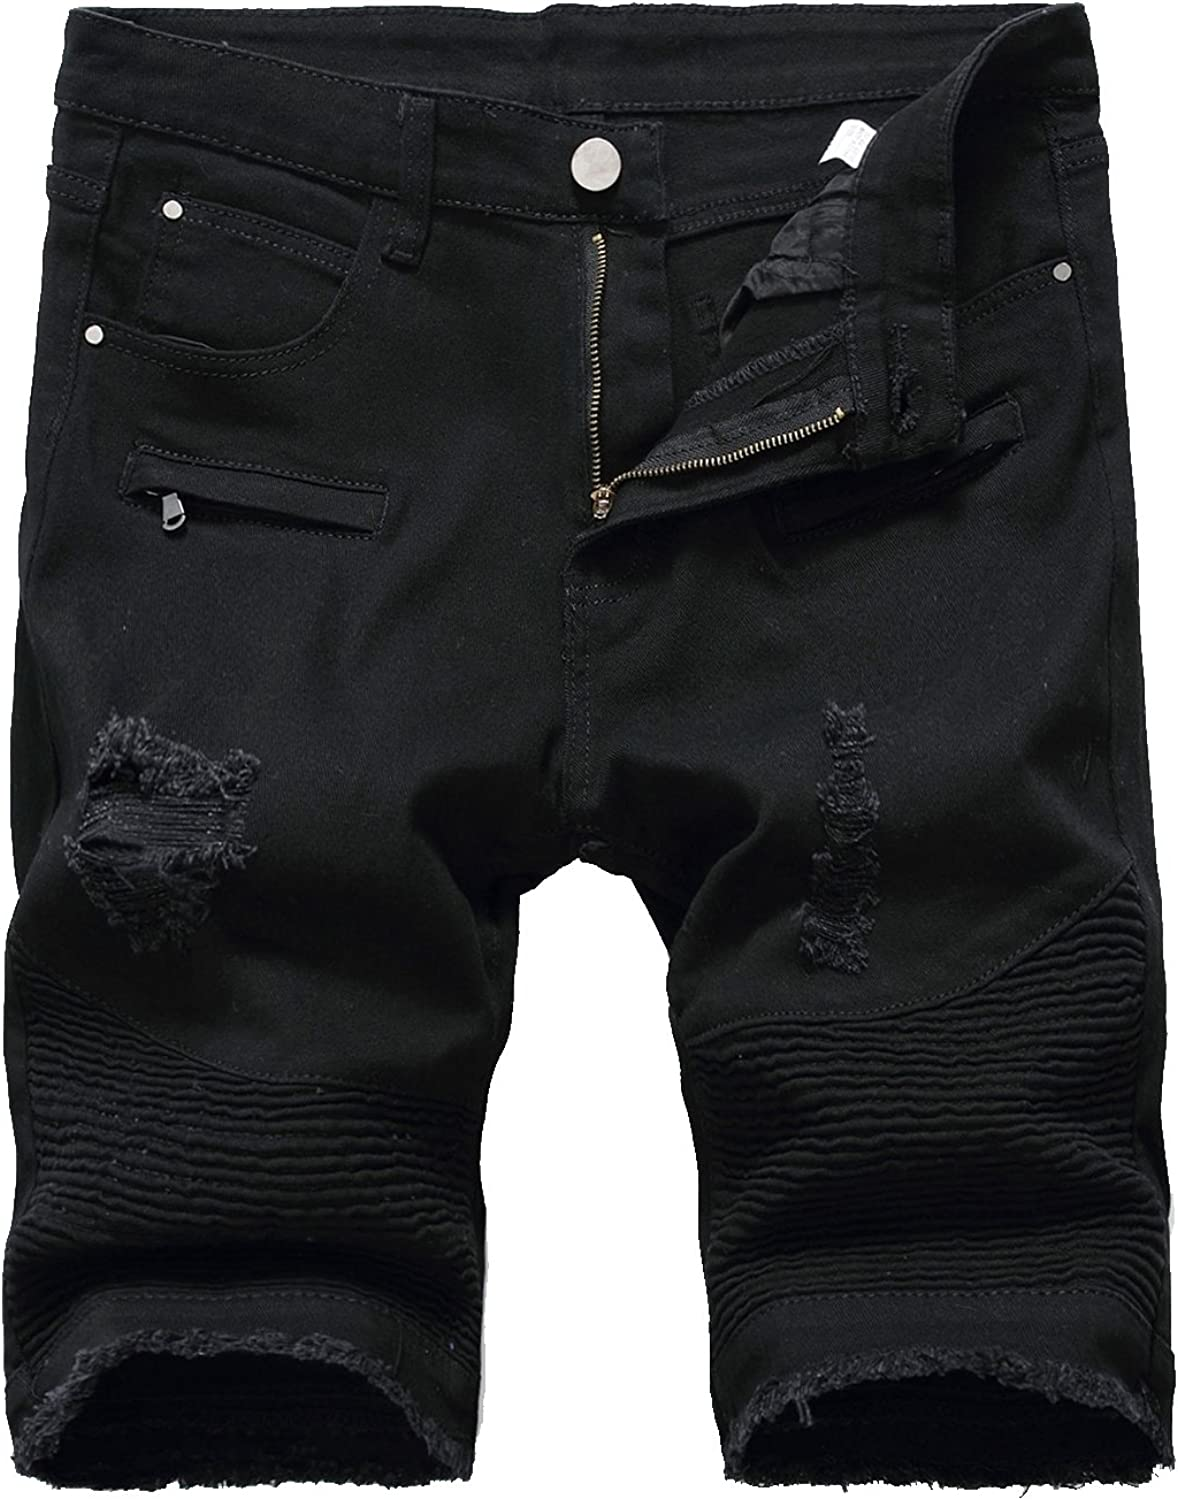 HULANG Mens Casual Ripped Distressed Jeans Denim Shorts with Broken Hole